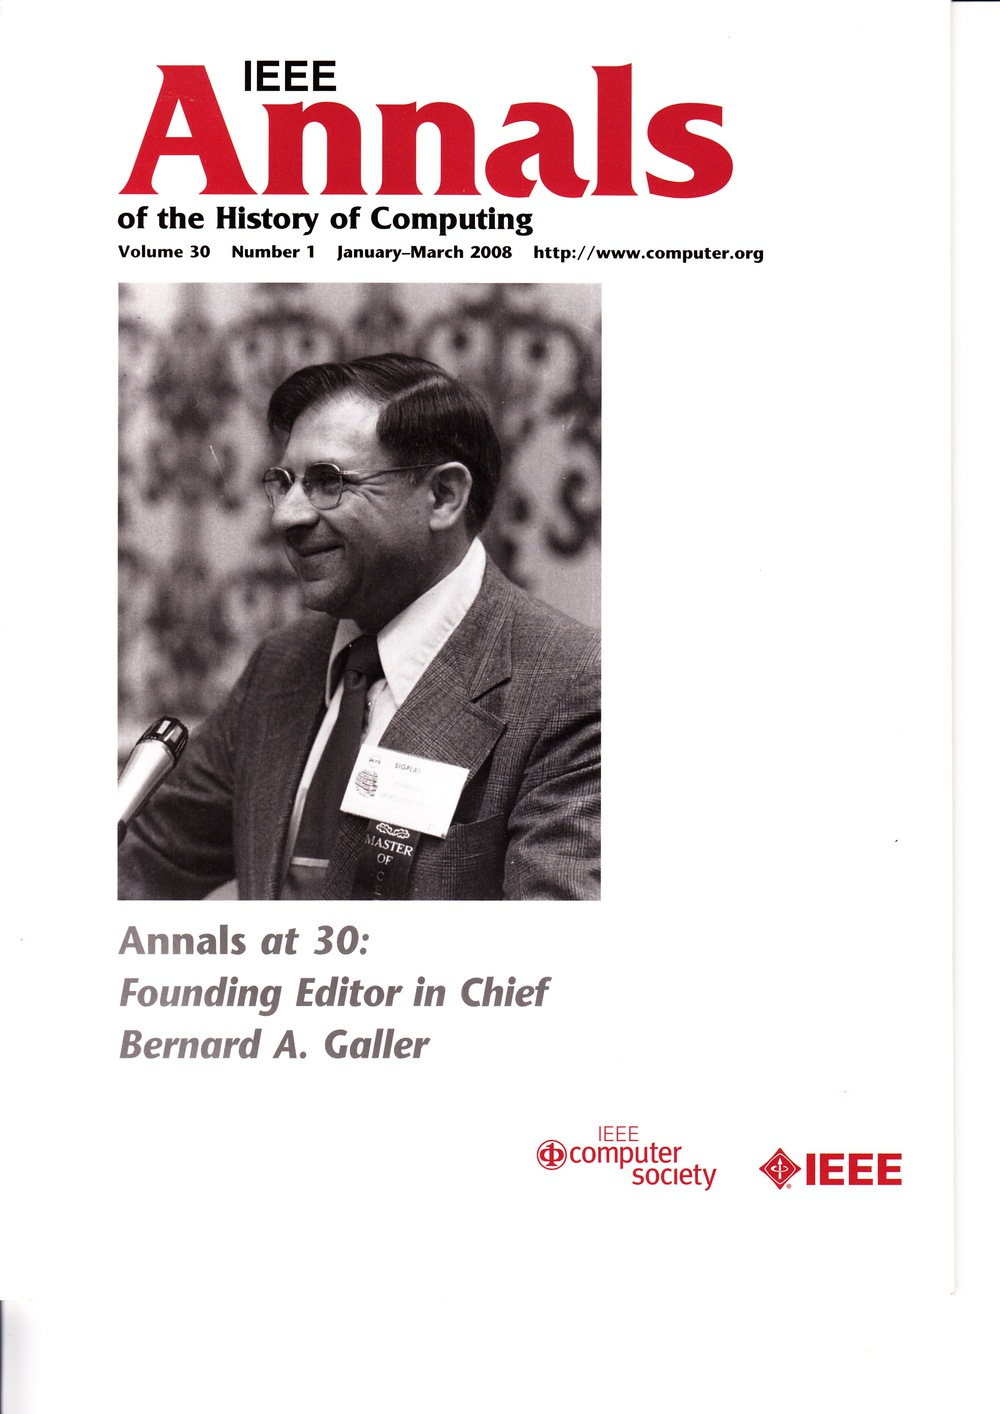 Scan of Document: IEEE Annals of the History of Computing - January-March 2008